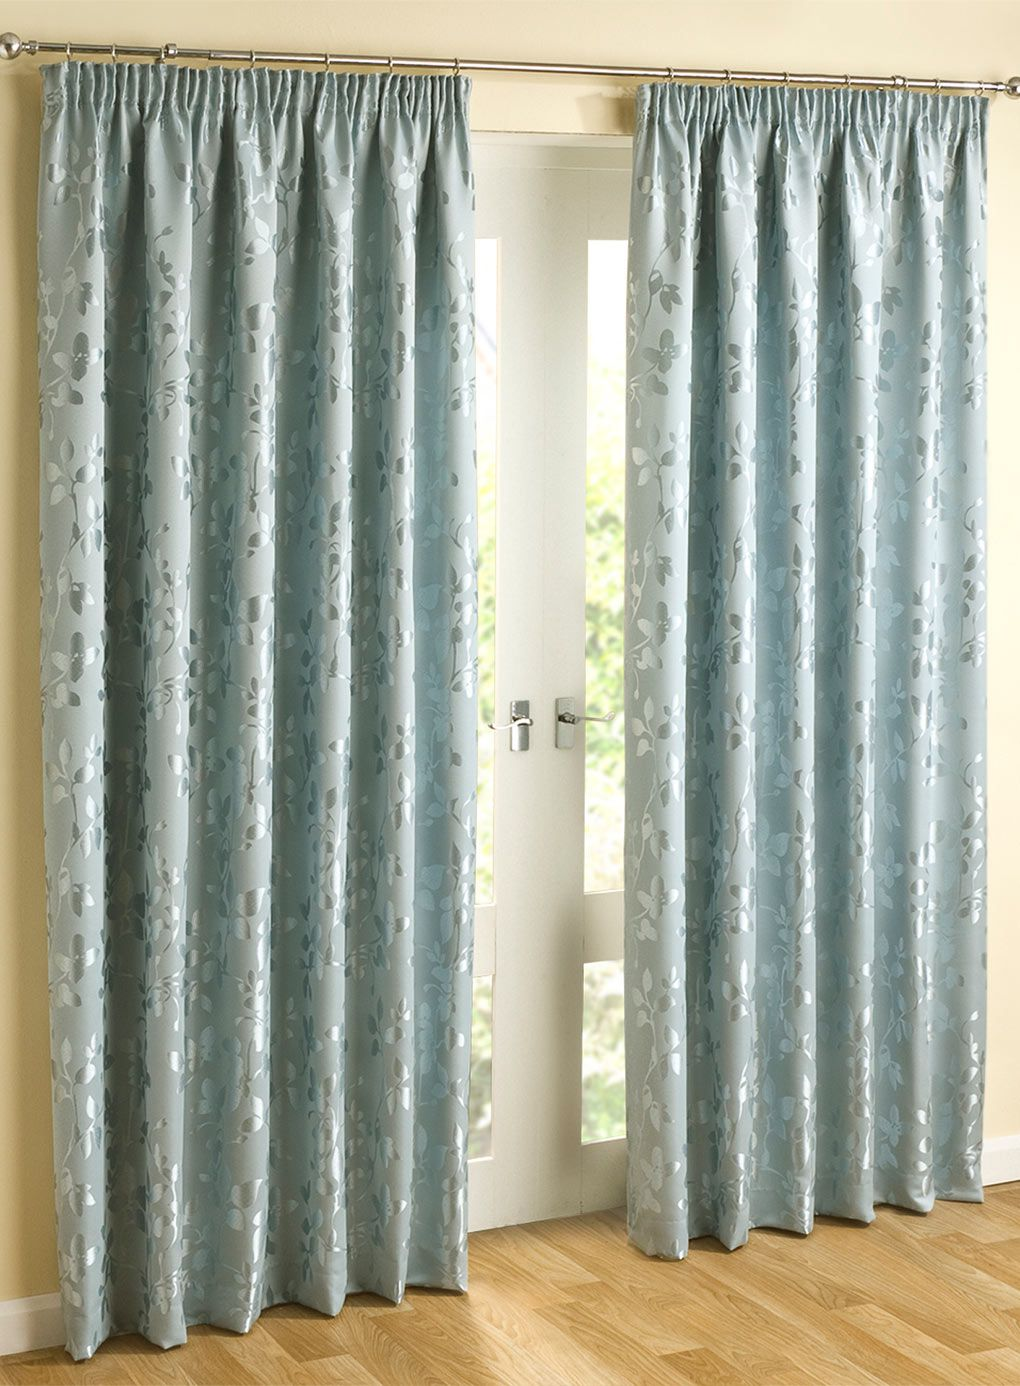 Alice Pencil Pleat Curtain - Duck Egg - curtains & accessories - Home,  Lighting & Furniture - BHS | Pleated curtains, Curtains, Pencil pleat